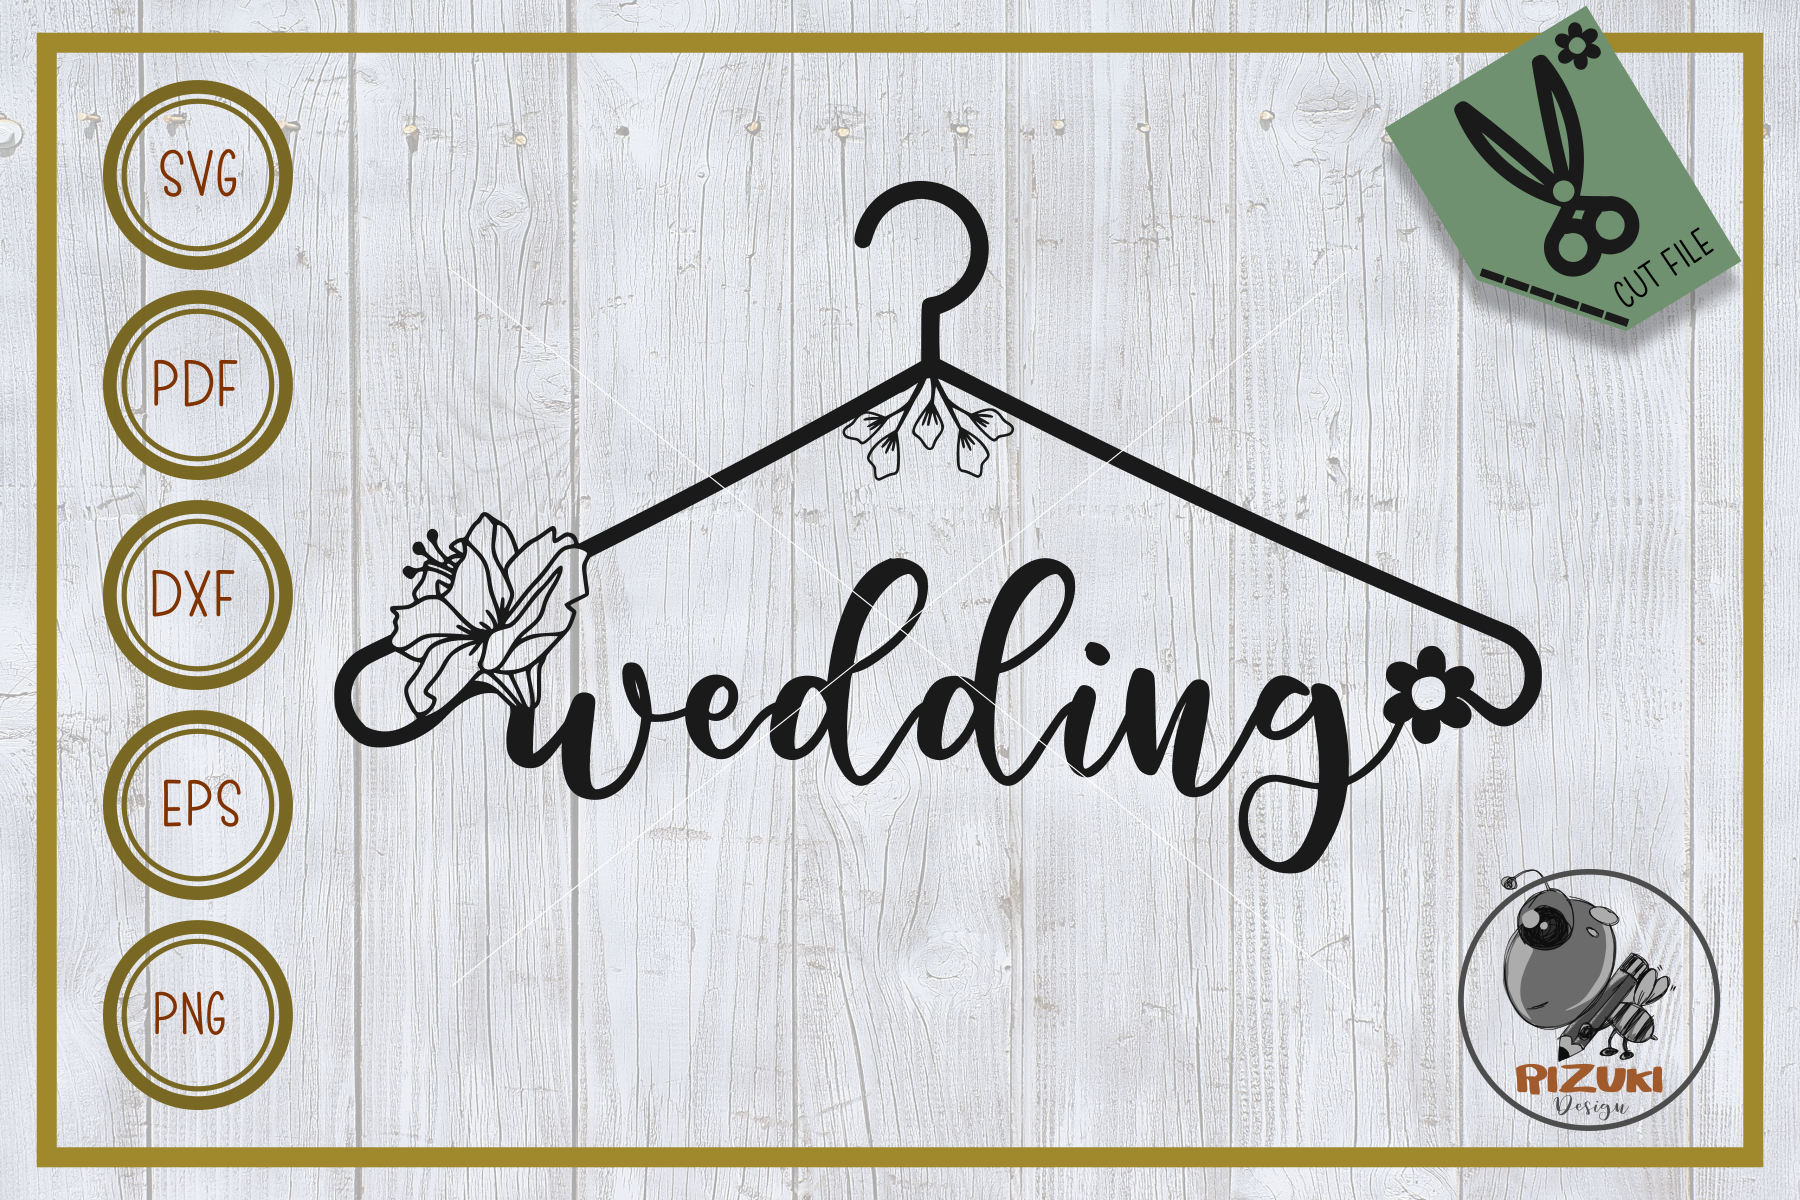 Download Free Wedding Wedding With Hanger Graphic By Rizuki Store for Cricut Explore, Silhouette and other cutting machines.